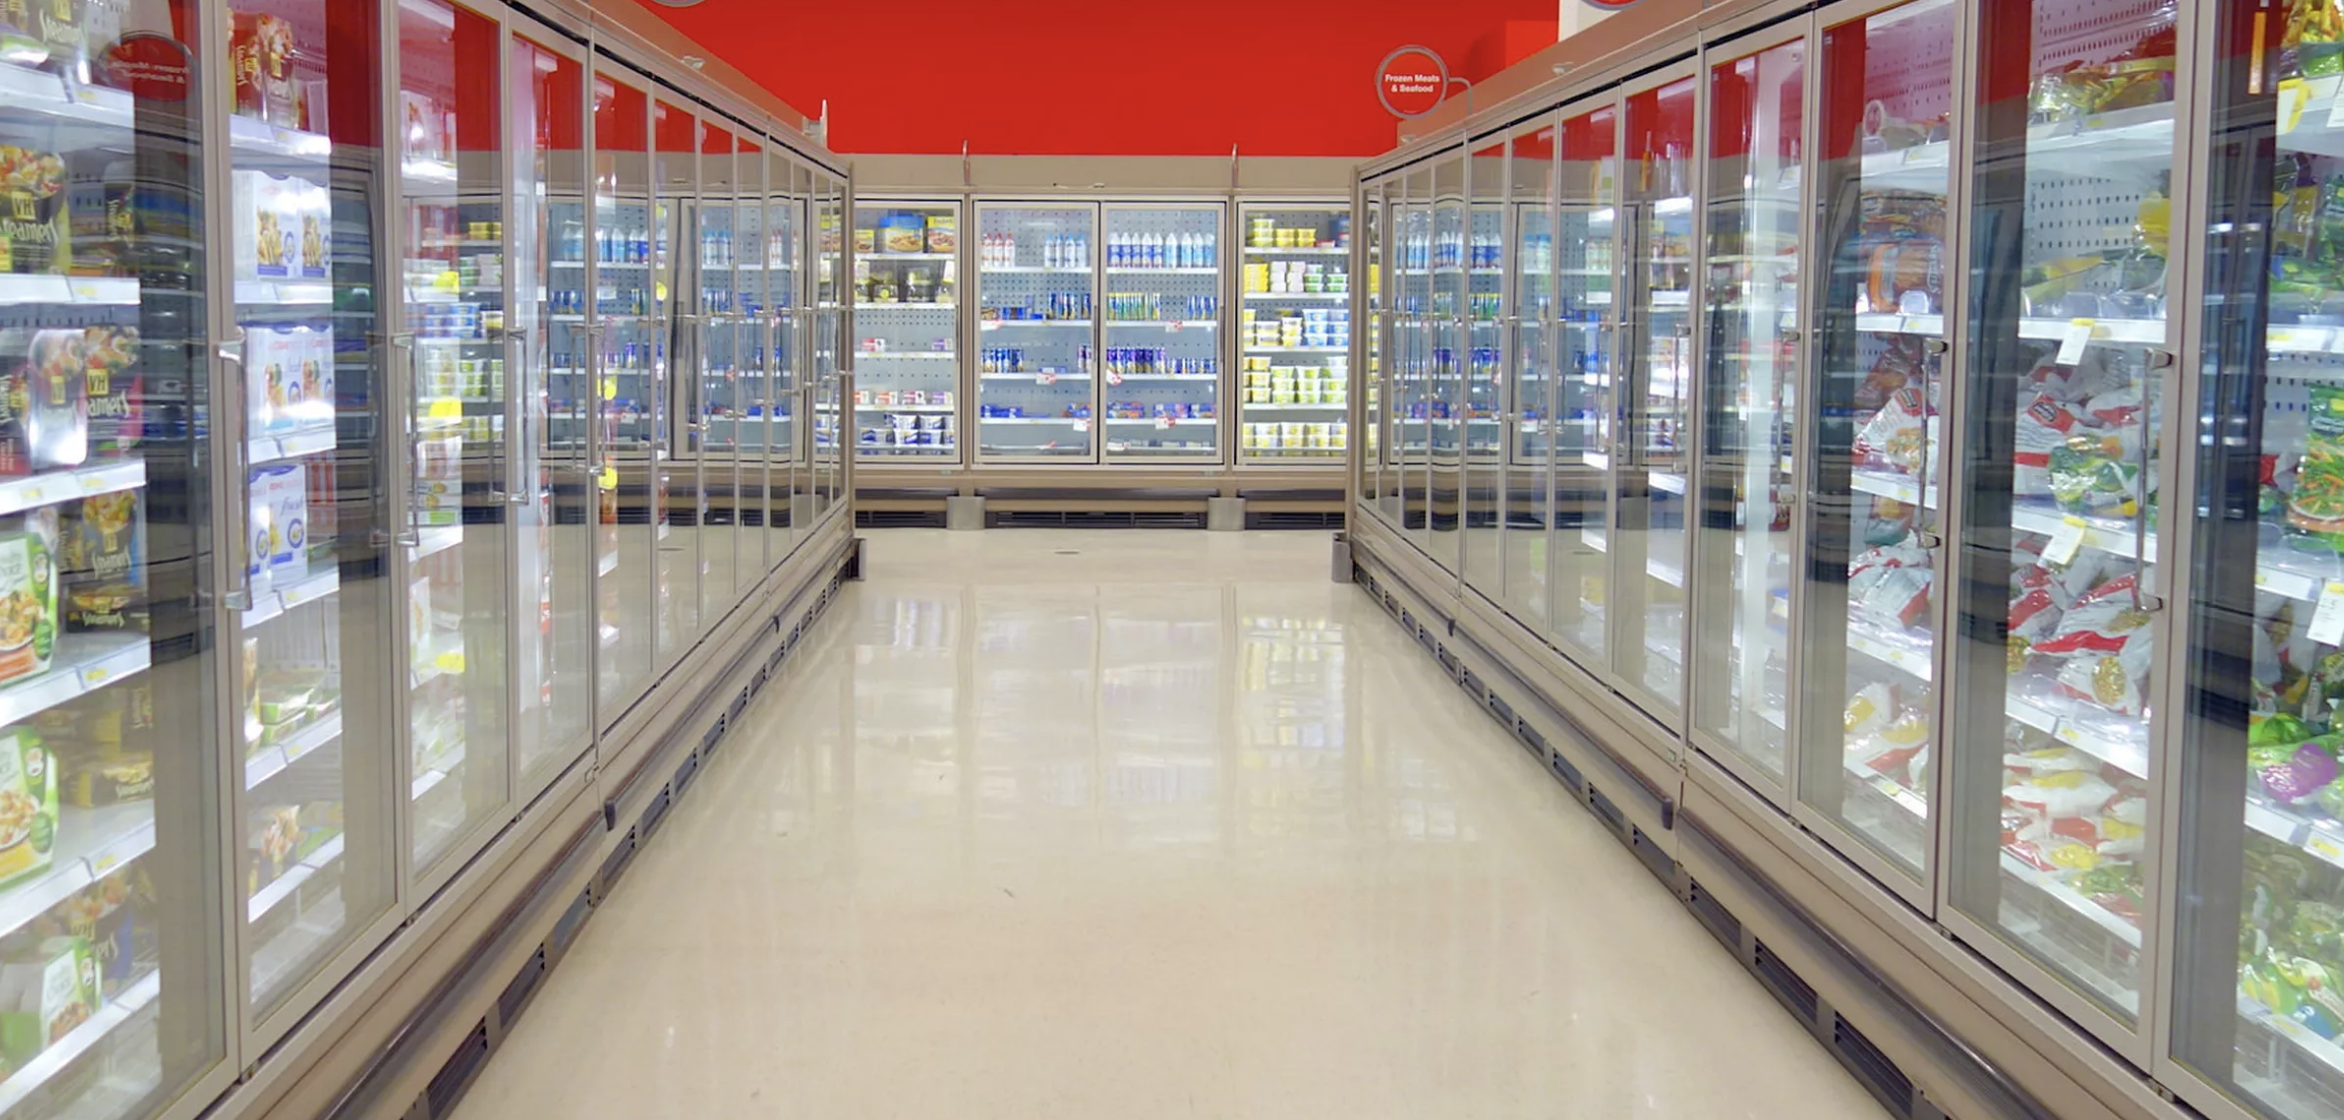 Frozen Food Aisle in Grocery Store - pre packaged foods